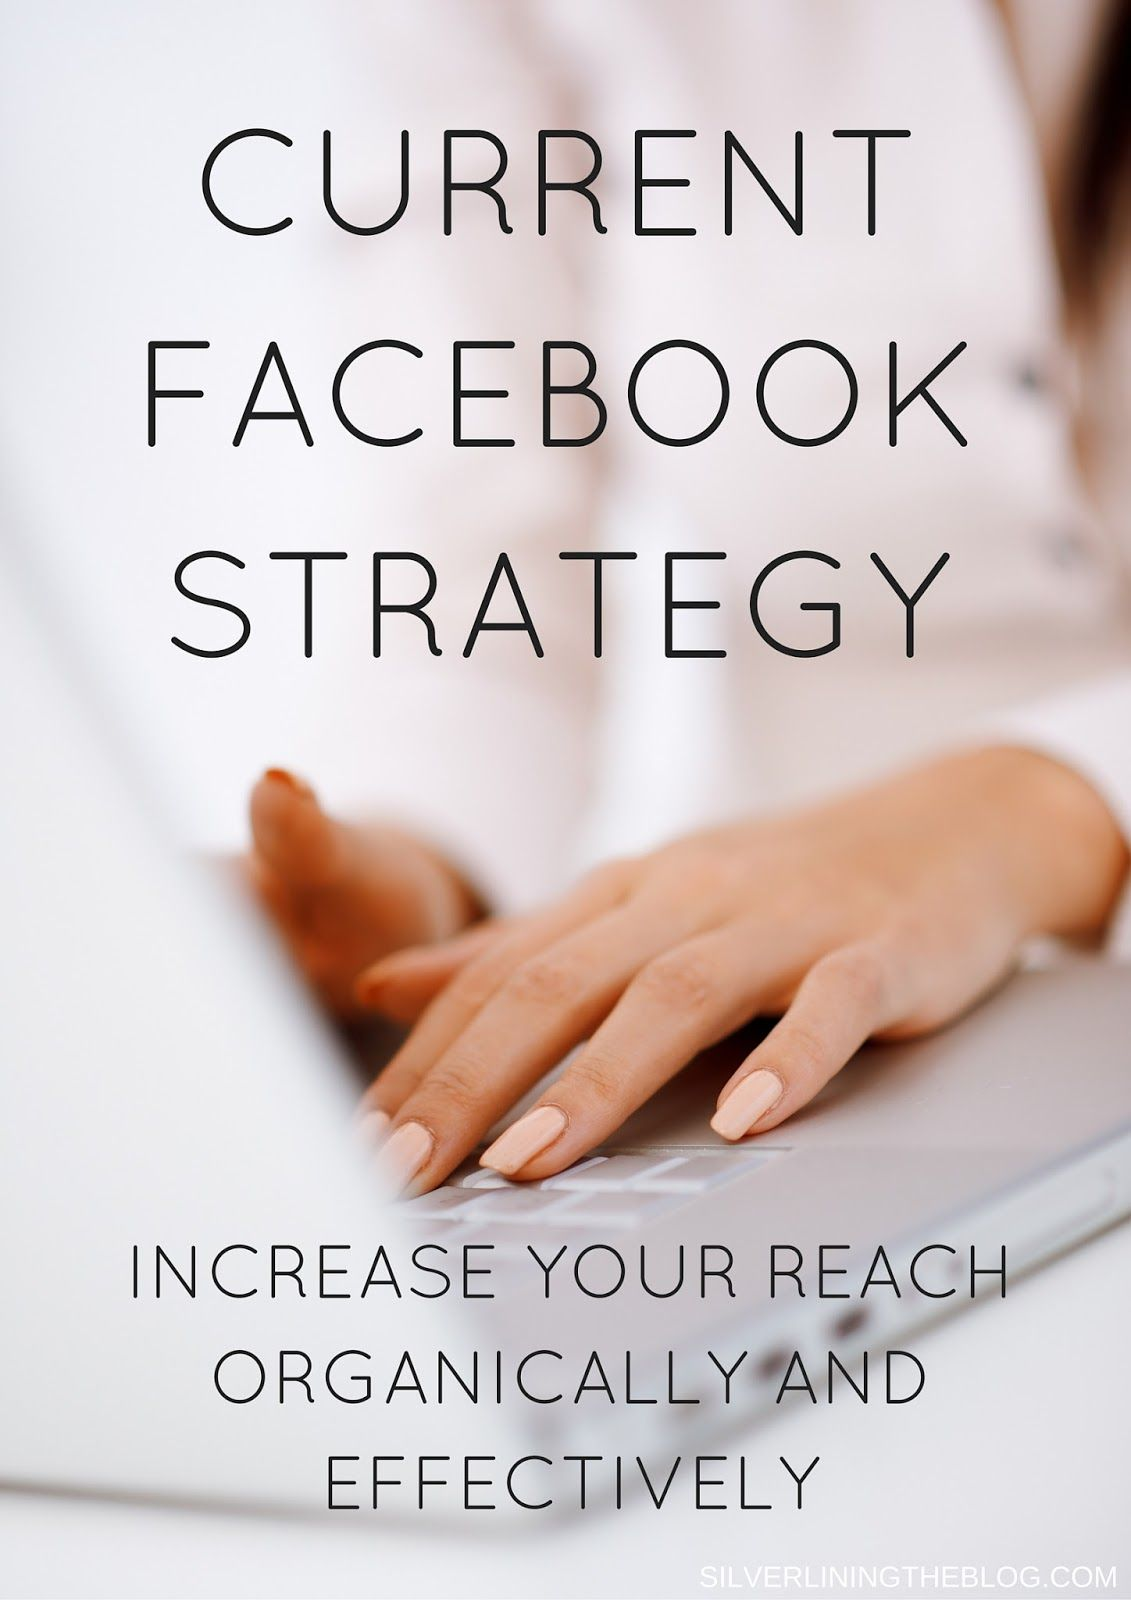 How I went from 6% of my fans reached per post to 83% reach per post on Facebook. An honest and transparent article about using Facebook's latest algorithms to your advantage - without paying for a single ad!